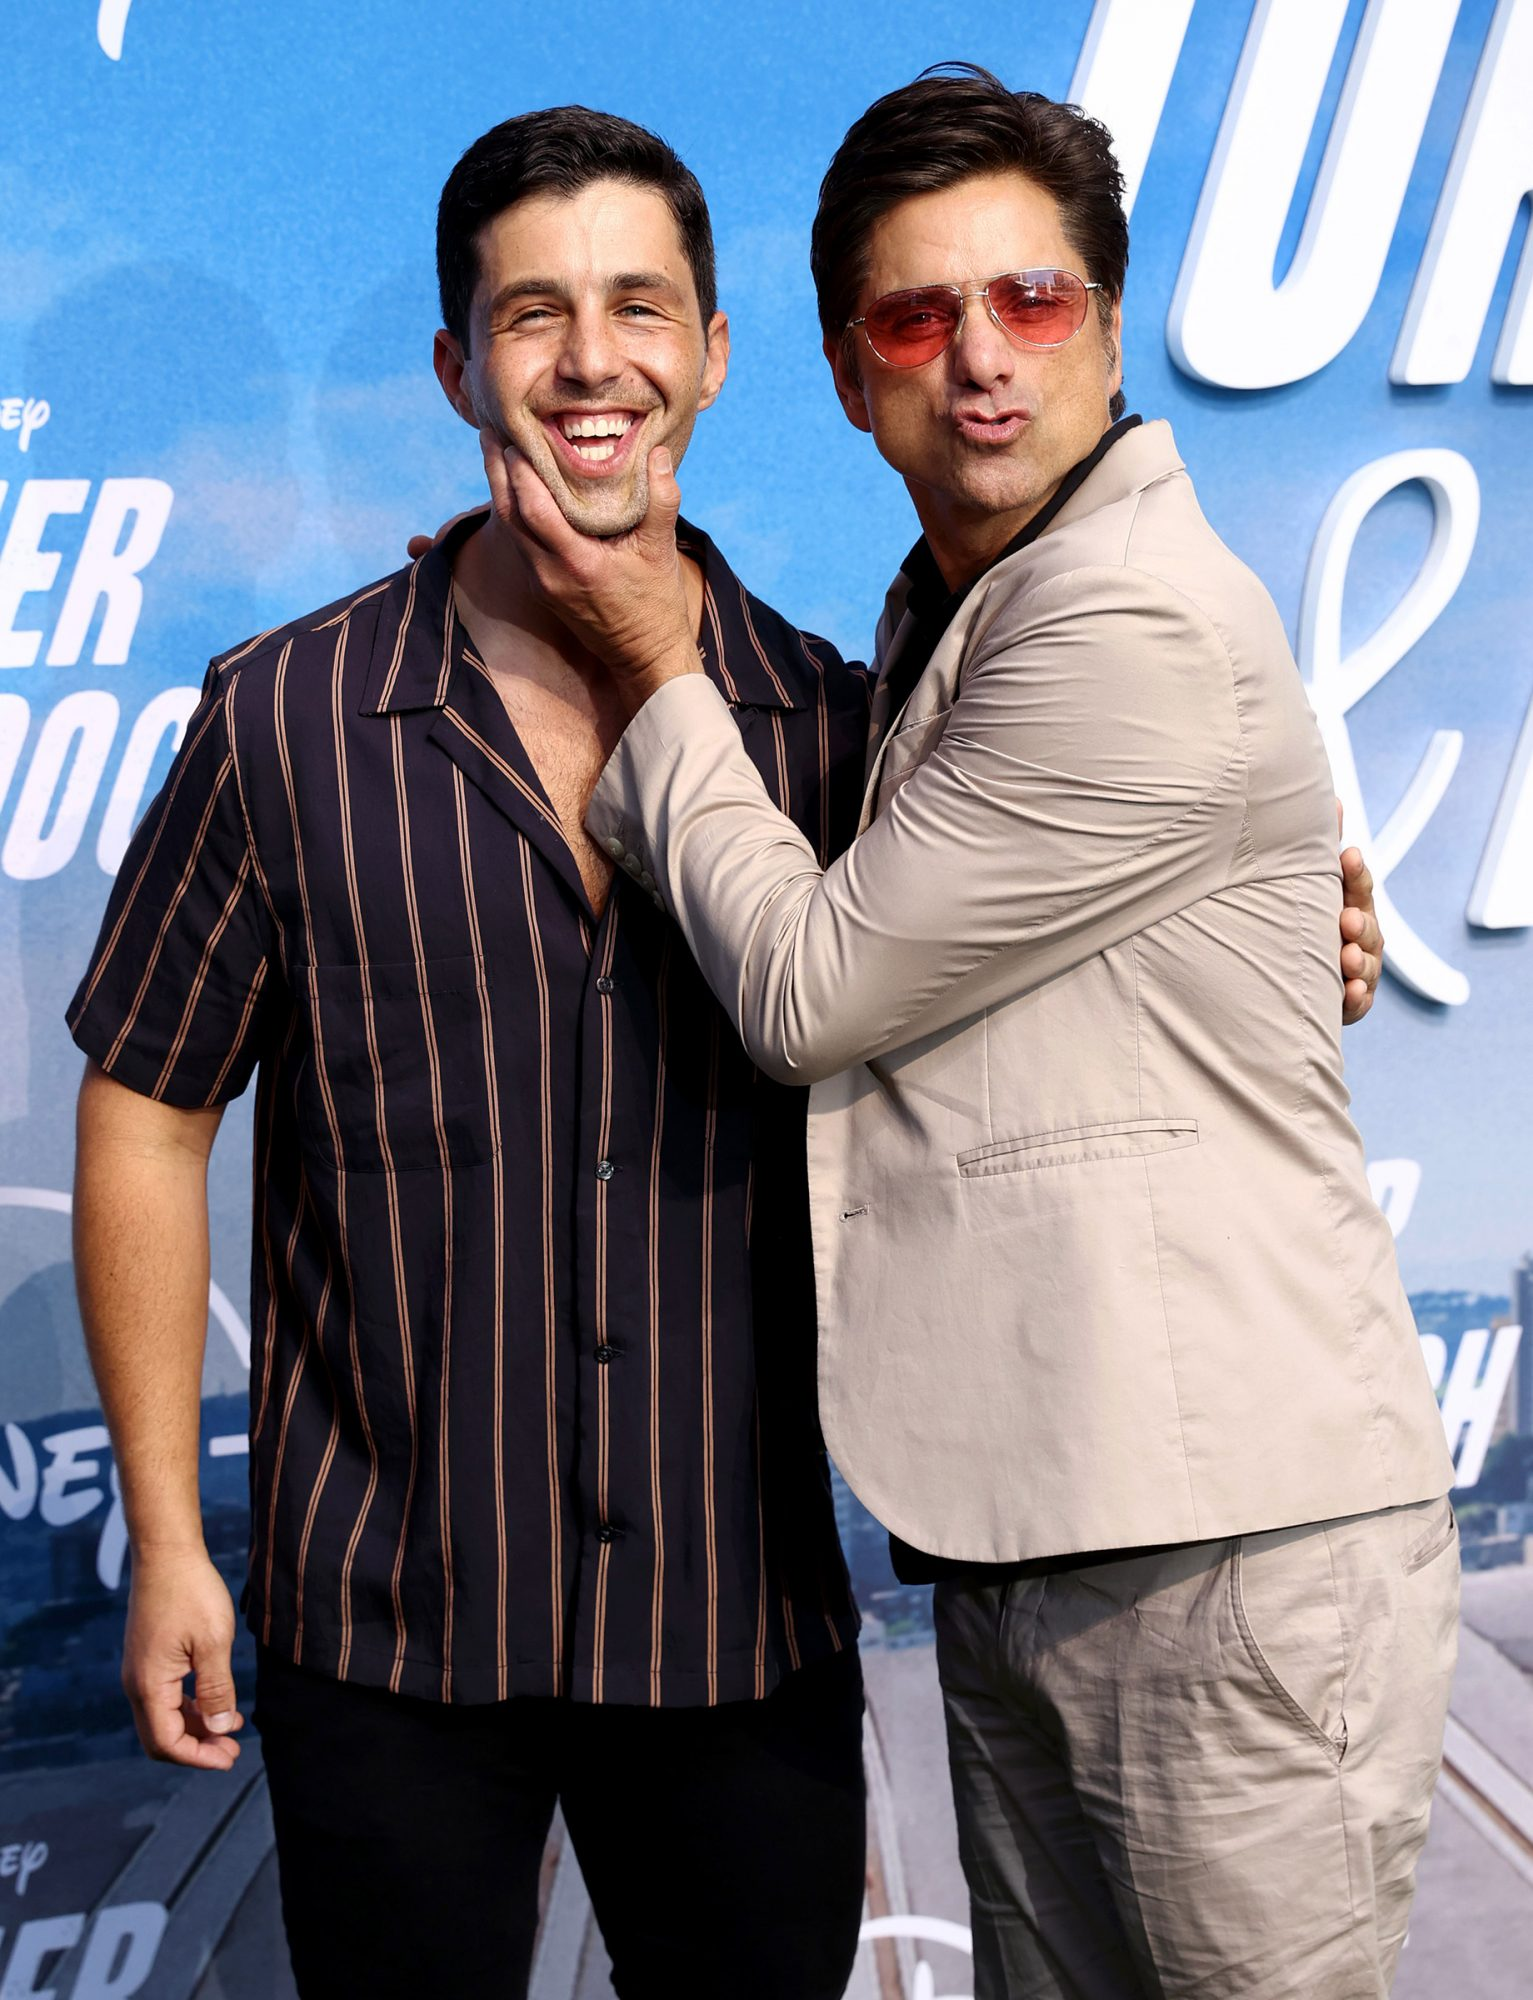 """Josh Peck and John Stamos attend the Disney+ """"Turner & Hooch"""" Premiere at Westfield Century City Mall on July 15, 2021 in Los Angeles, California"""